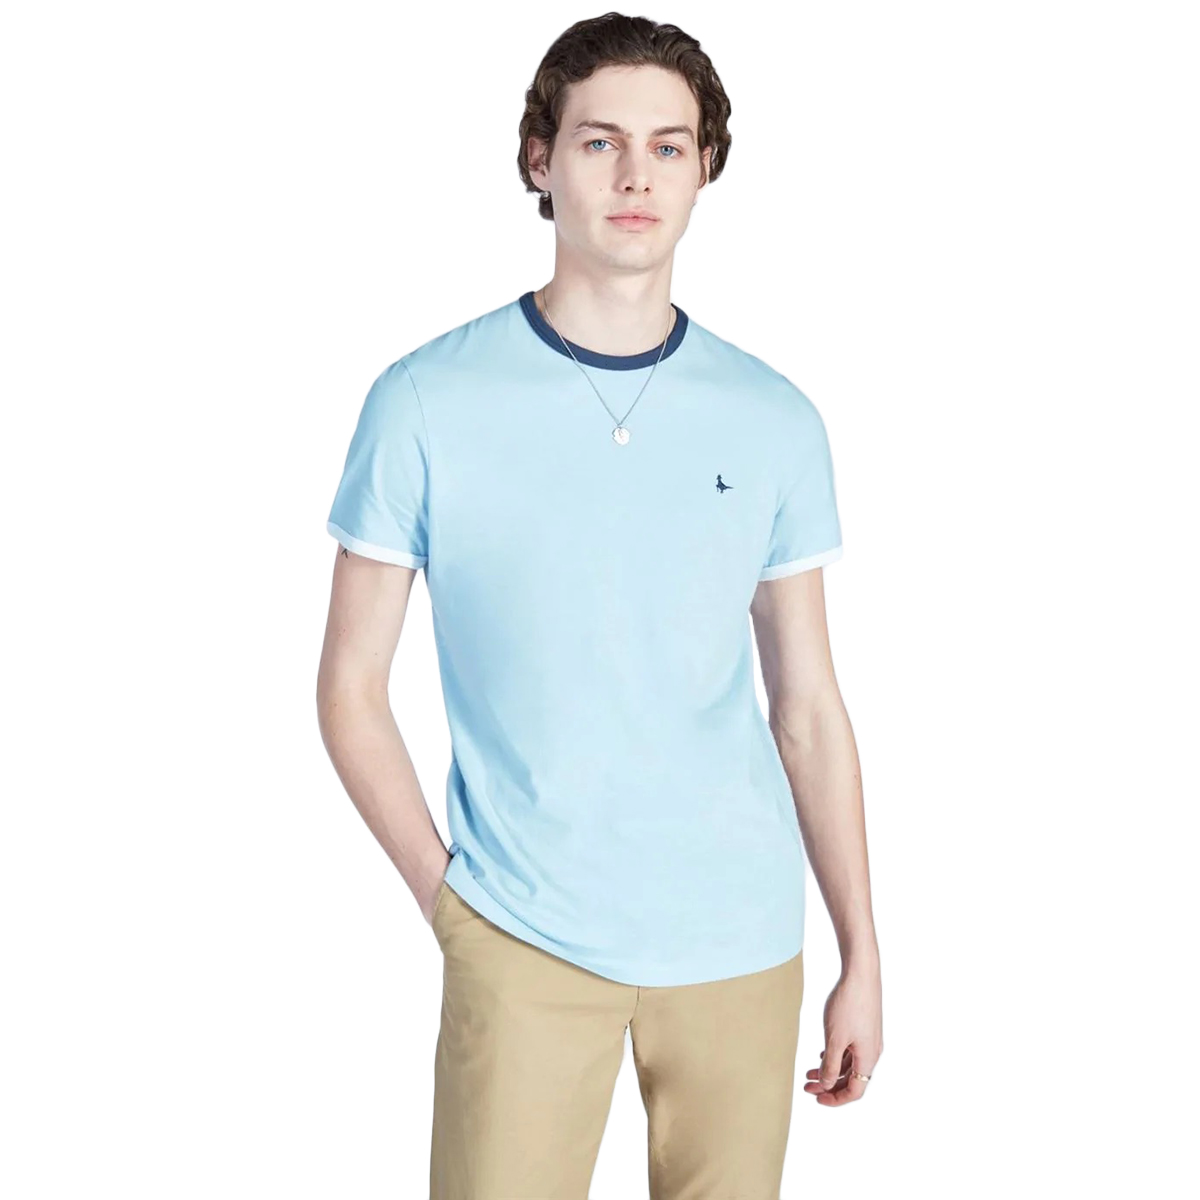 Jack Wills Men's Chilton Ringer T-Shirt - Blue, L